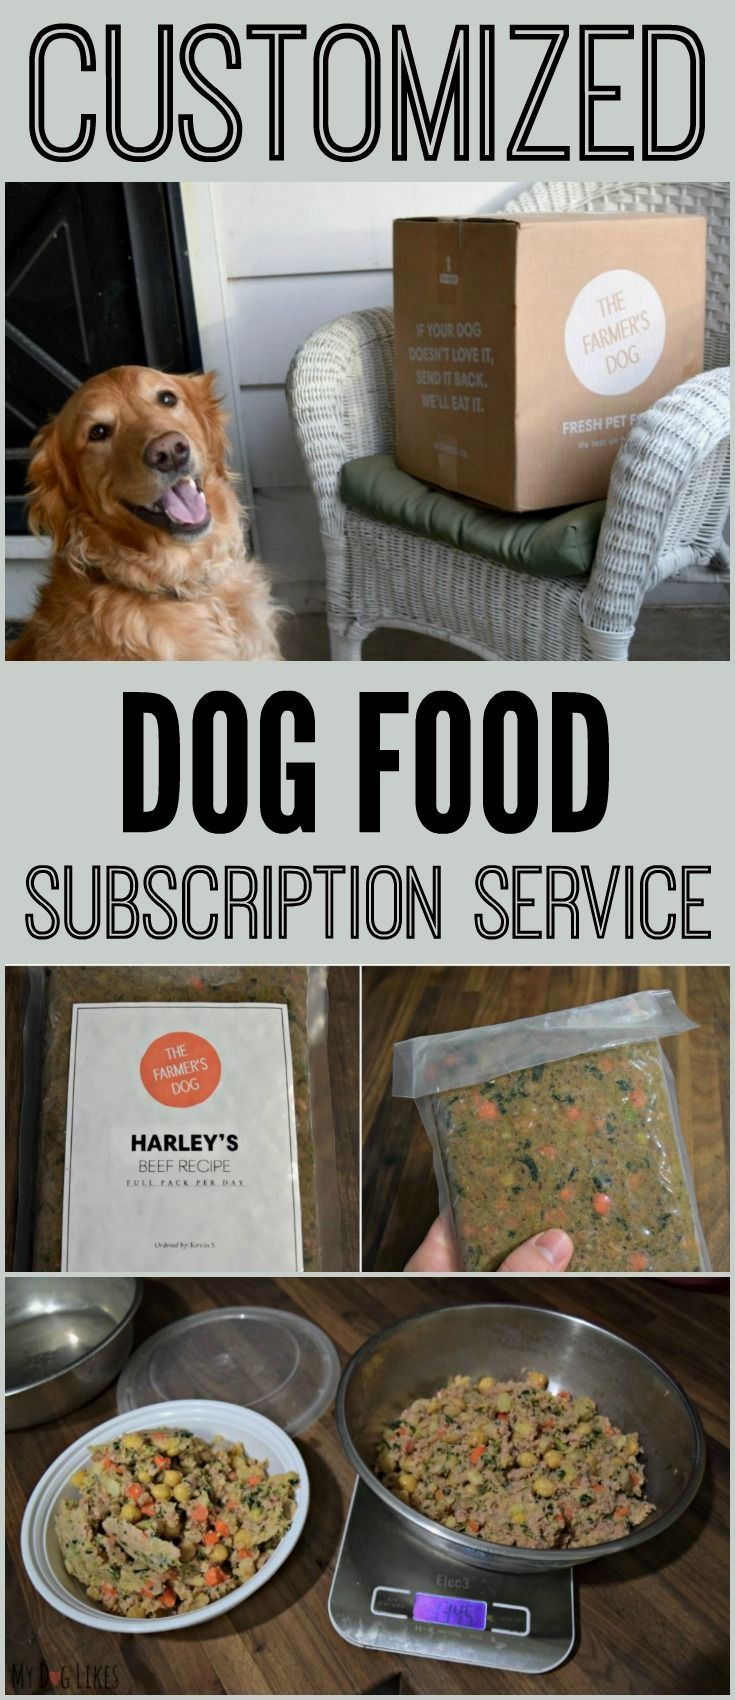 A dog food delivery service like the farmers dog can